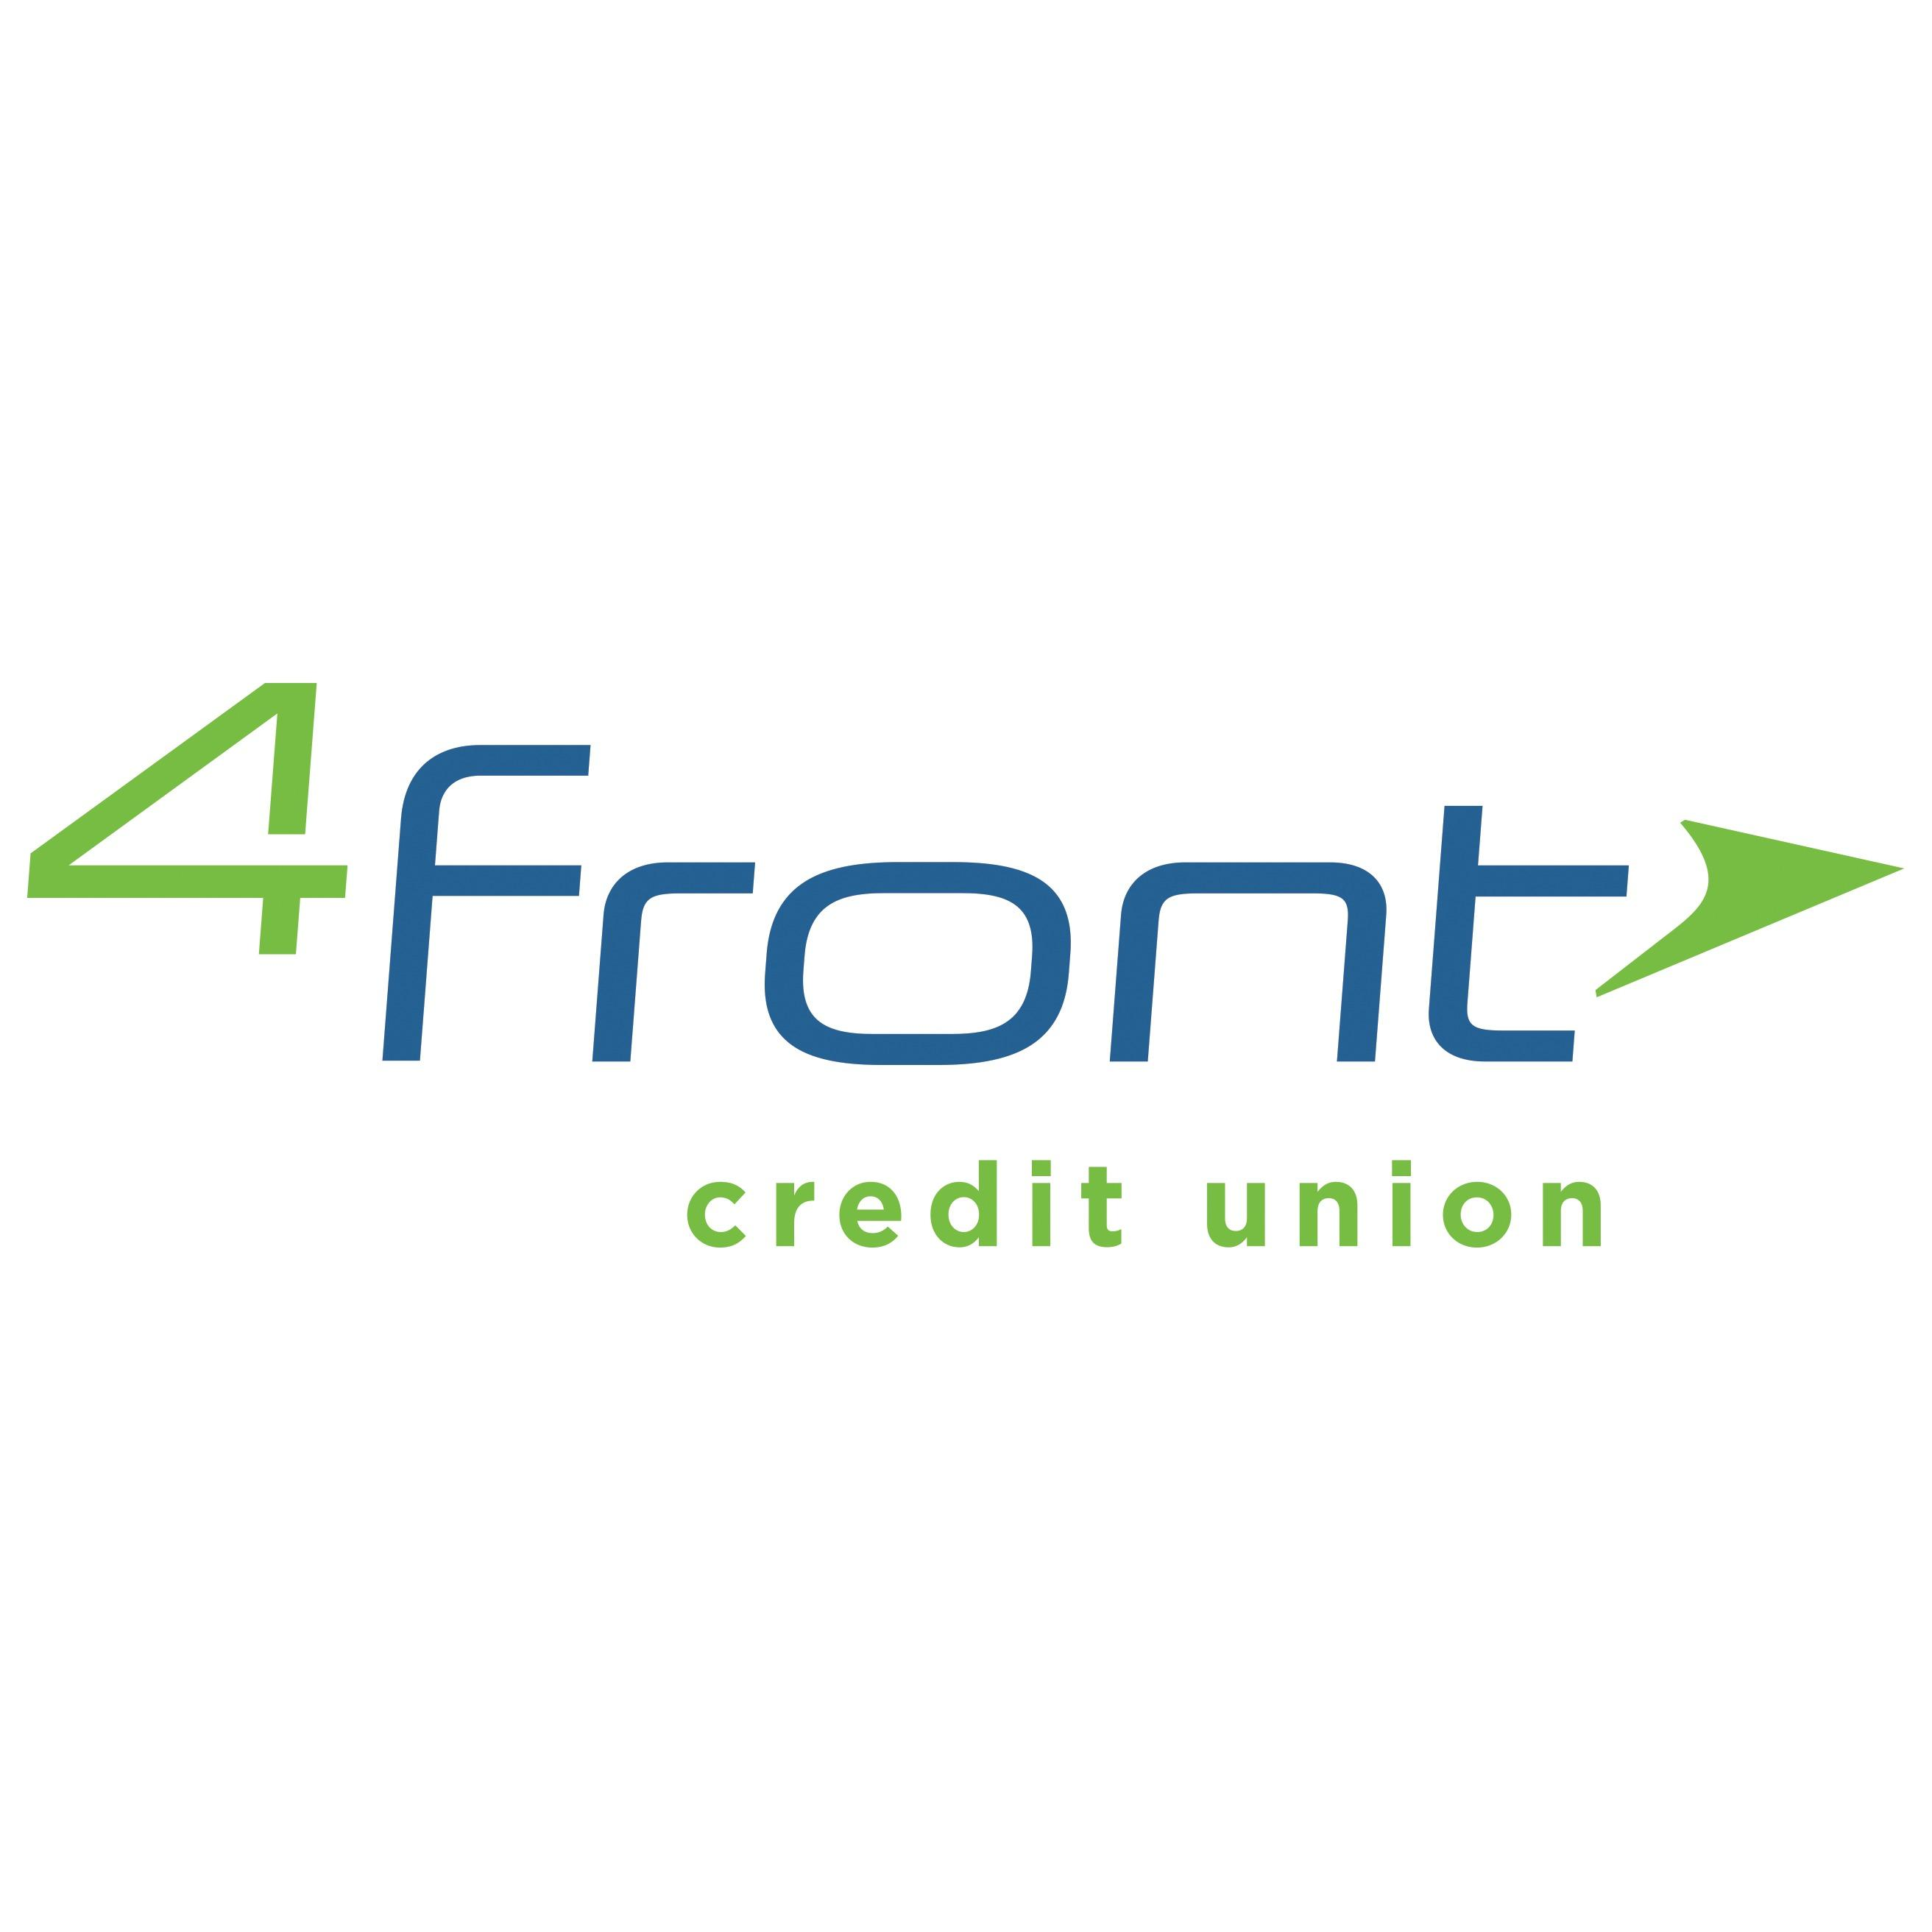 4Front Credit Union - Manistee, MI 49660 - (800)765-0110 | ShowMeLocal.com